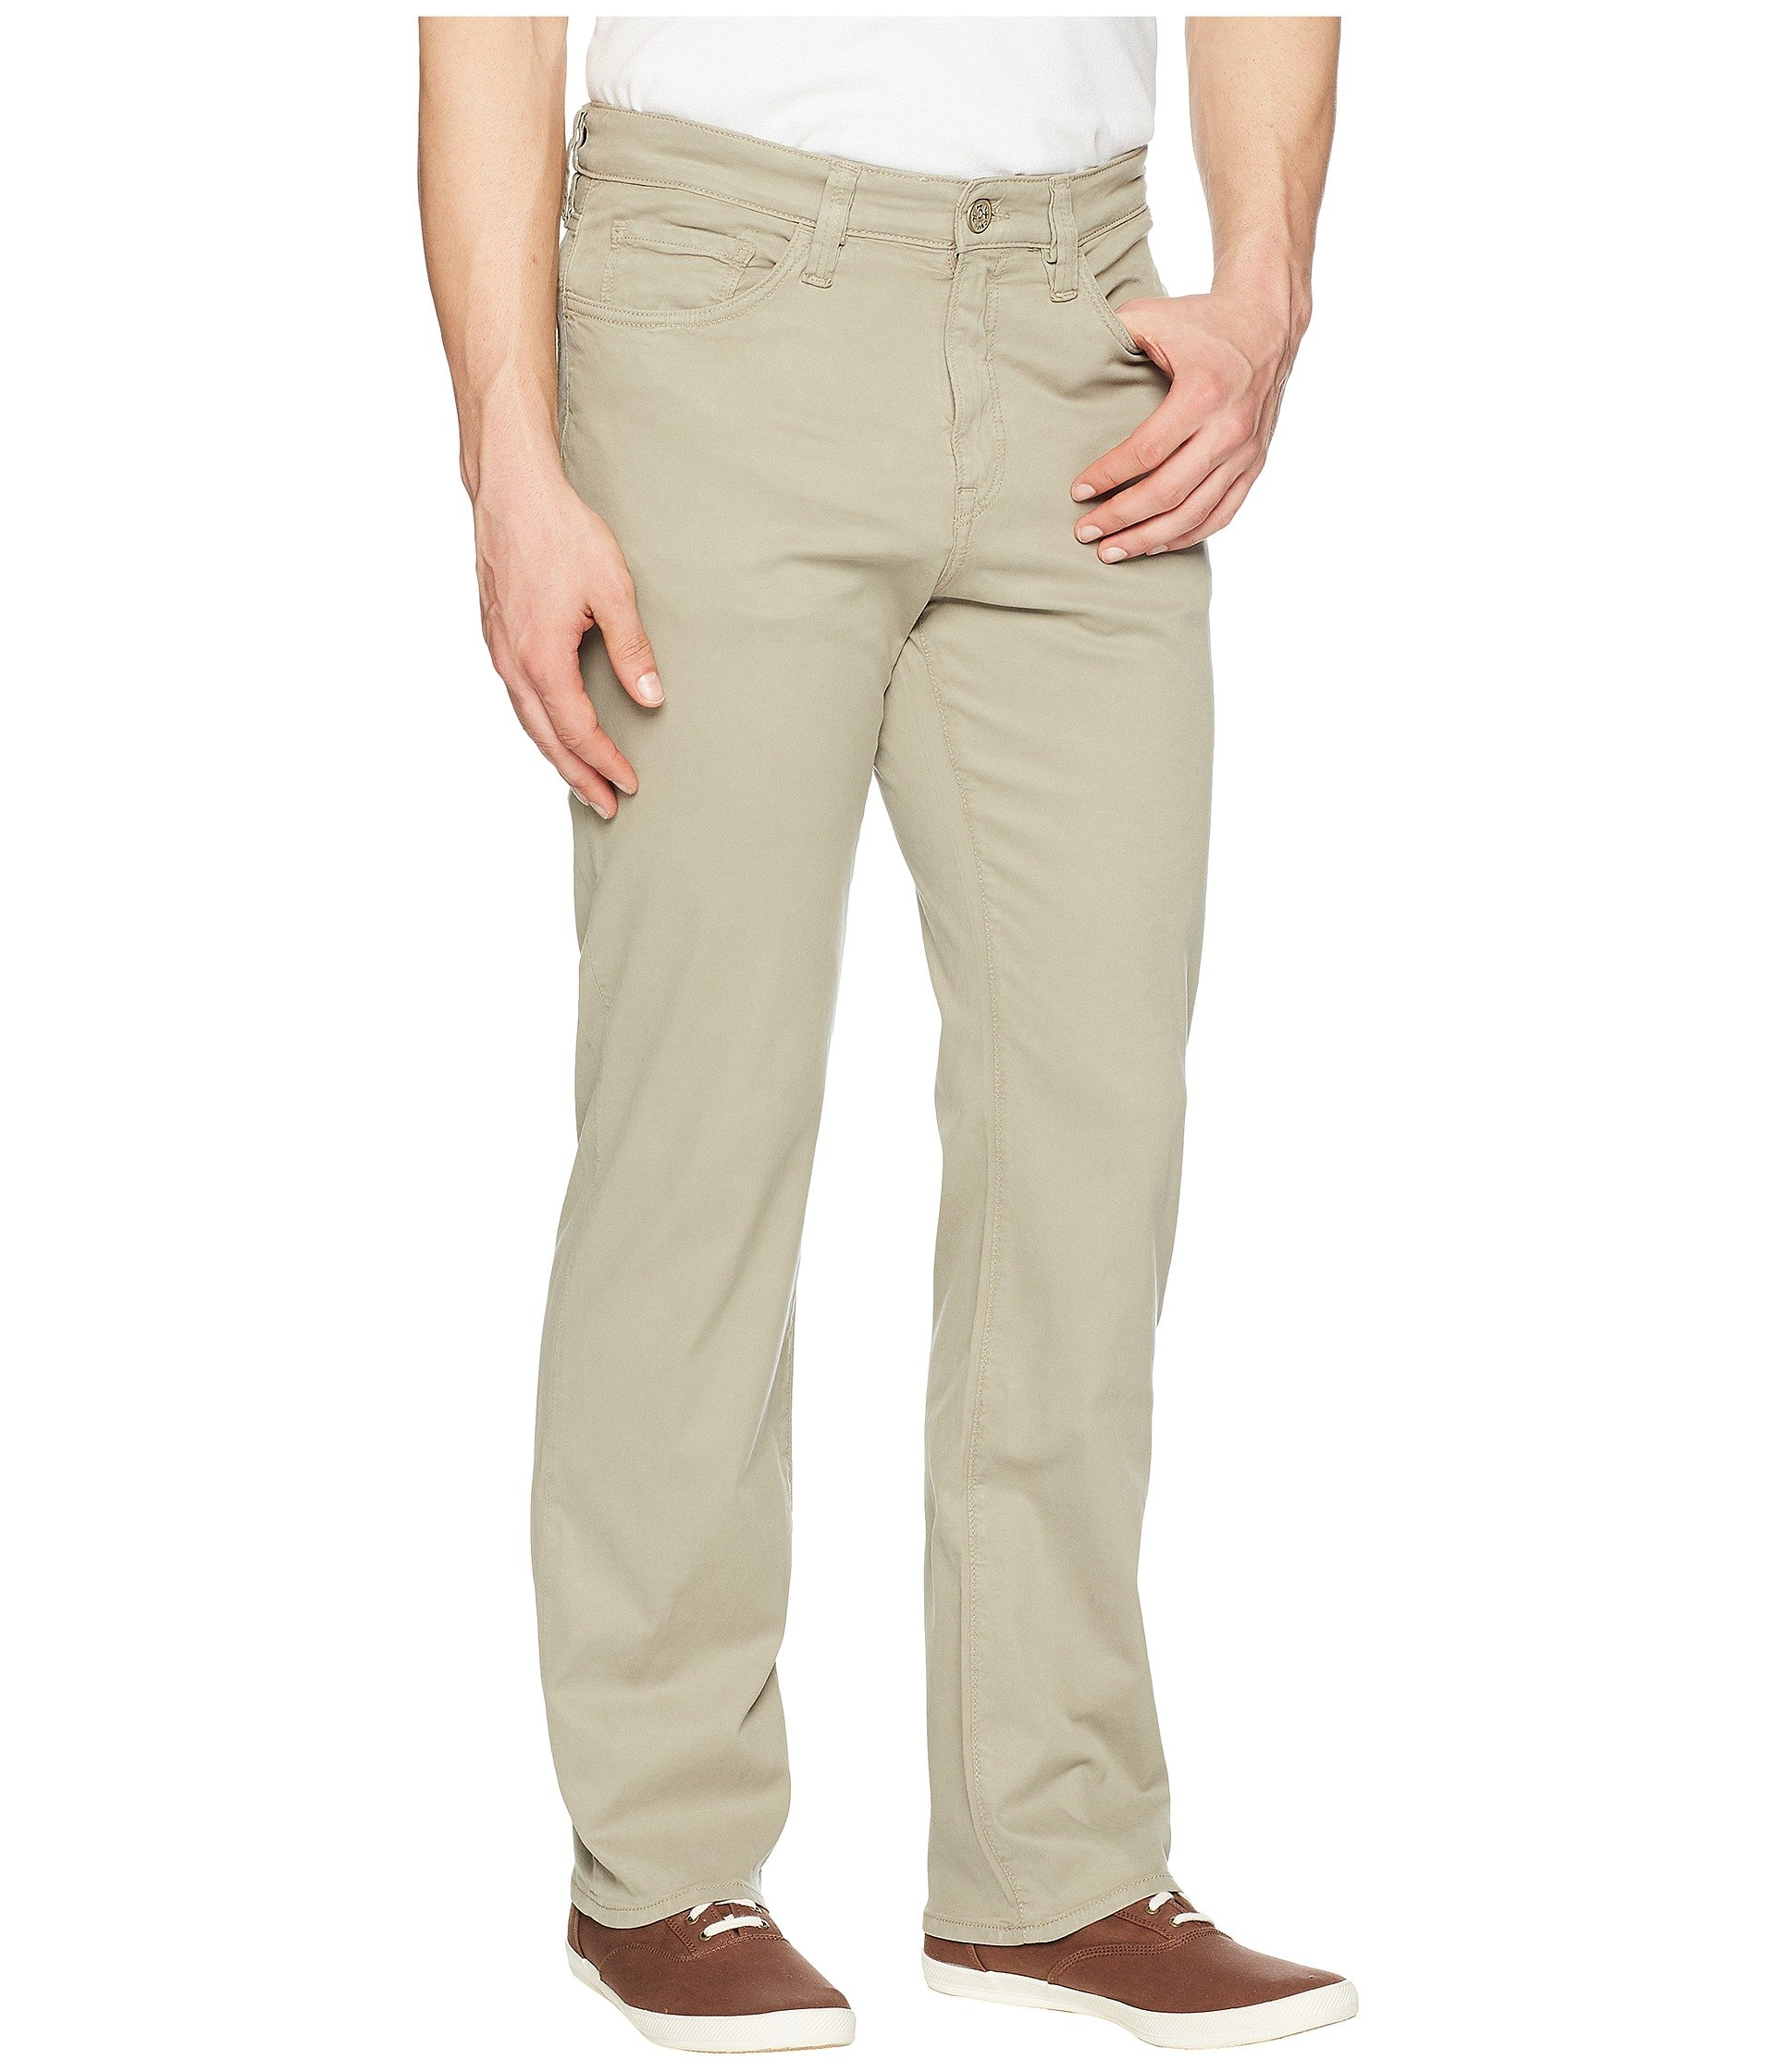 Twill Charisma Khaki Fine Heritage 34 Fit In Relaxed AFn04qwT